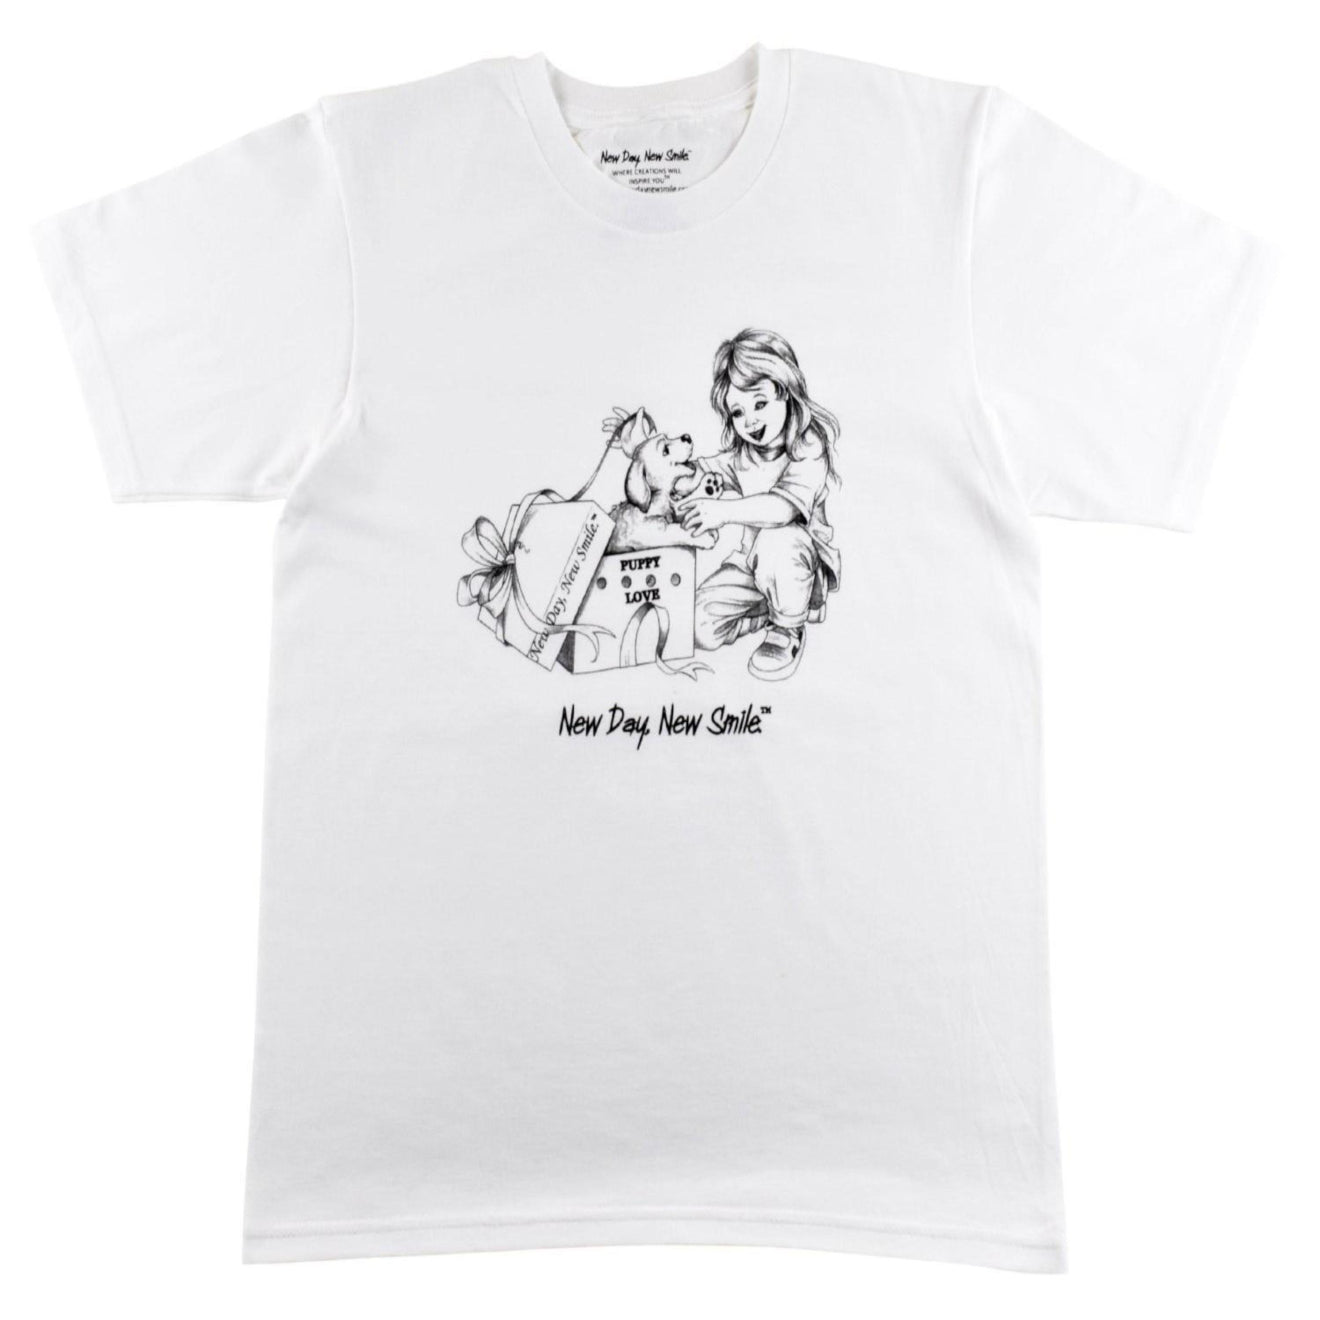 Little Girl Surprise with Puppy in a Box T-Shirt | New Day, New Smile.® Collection